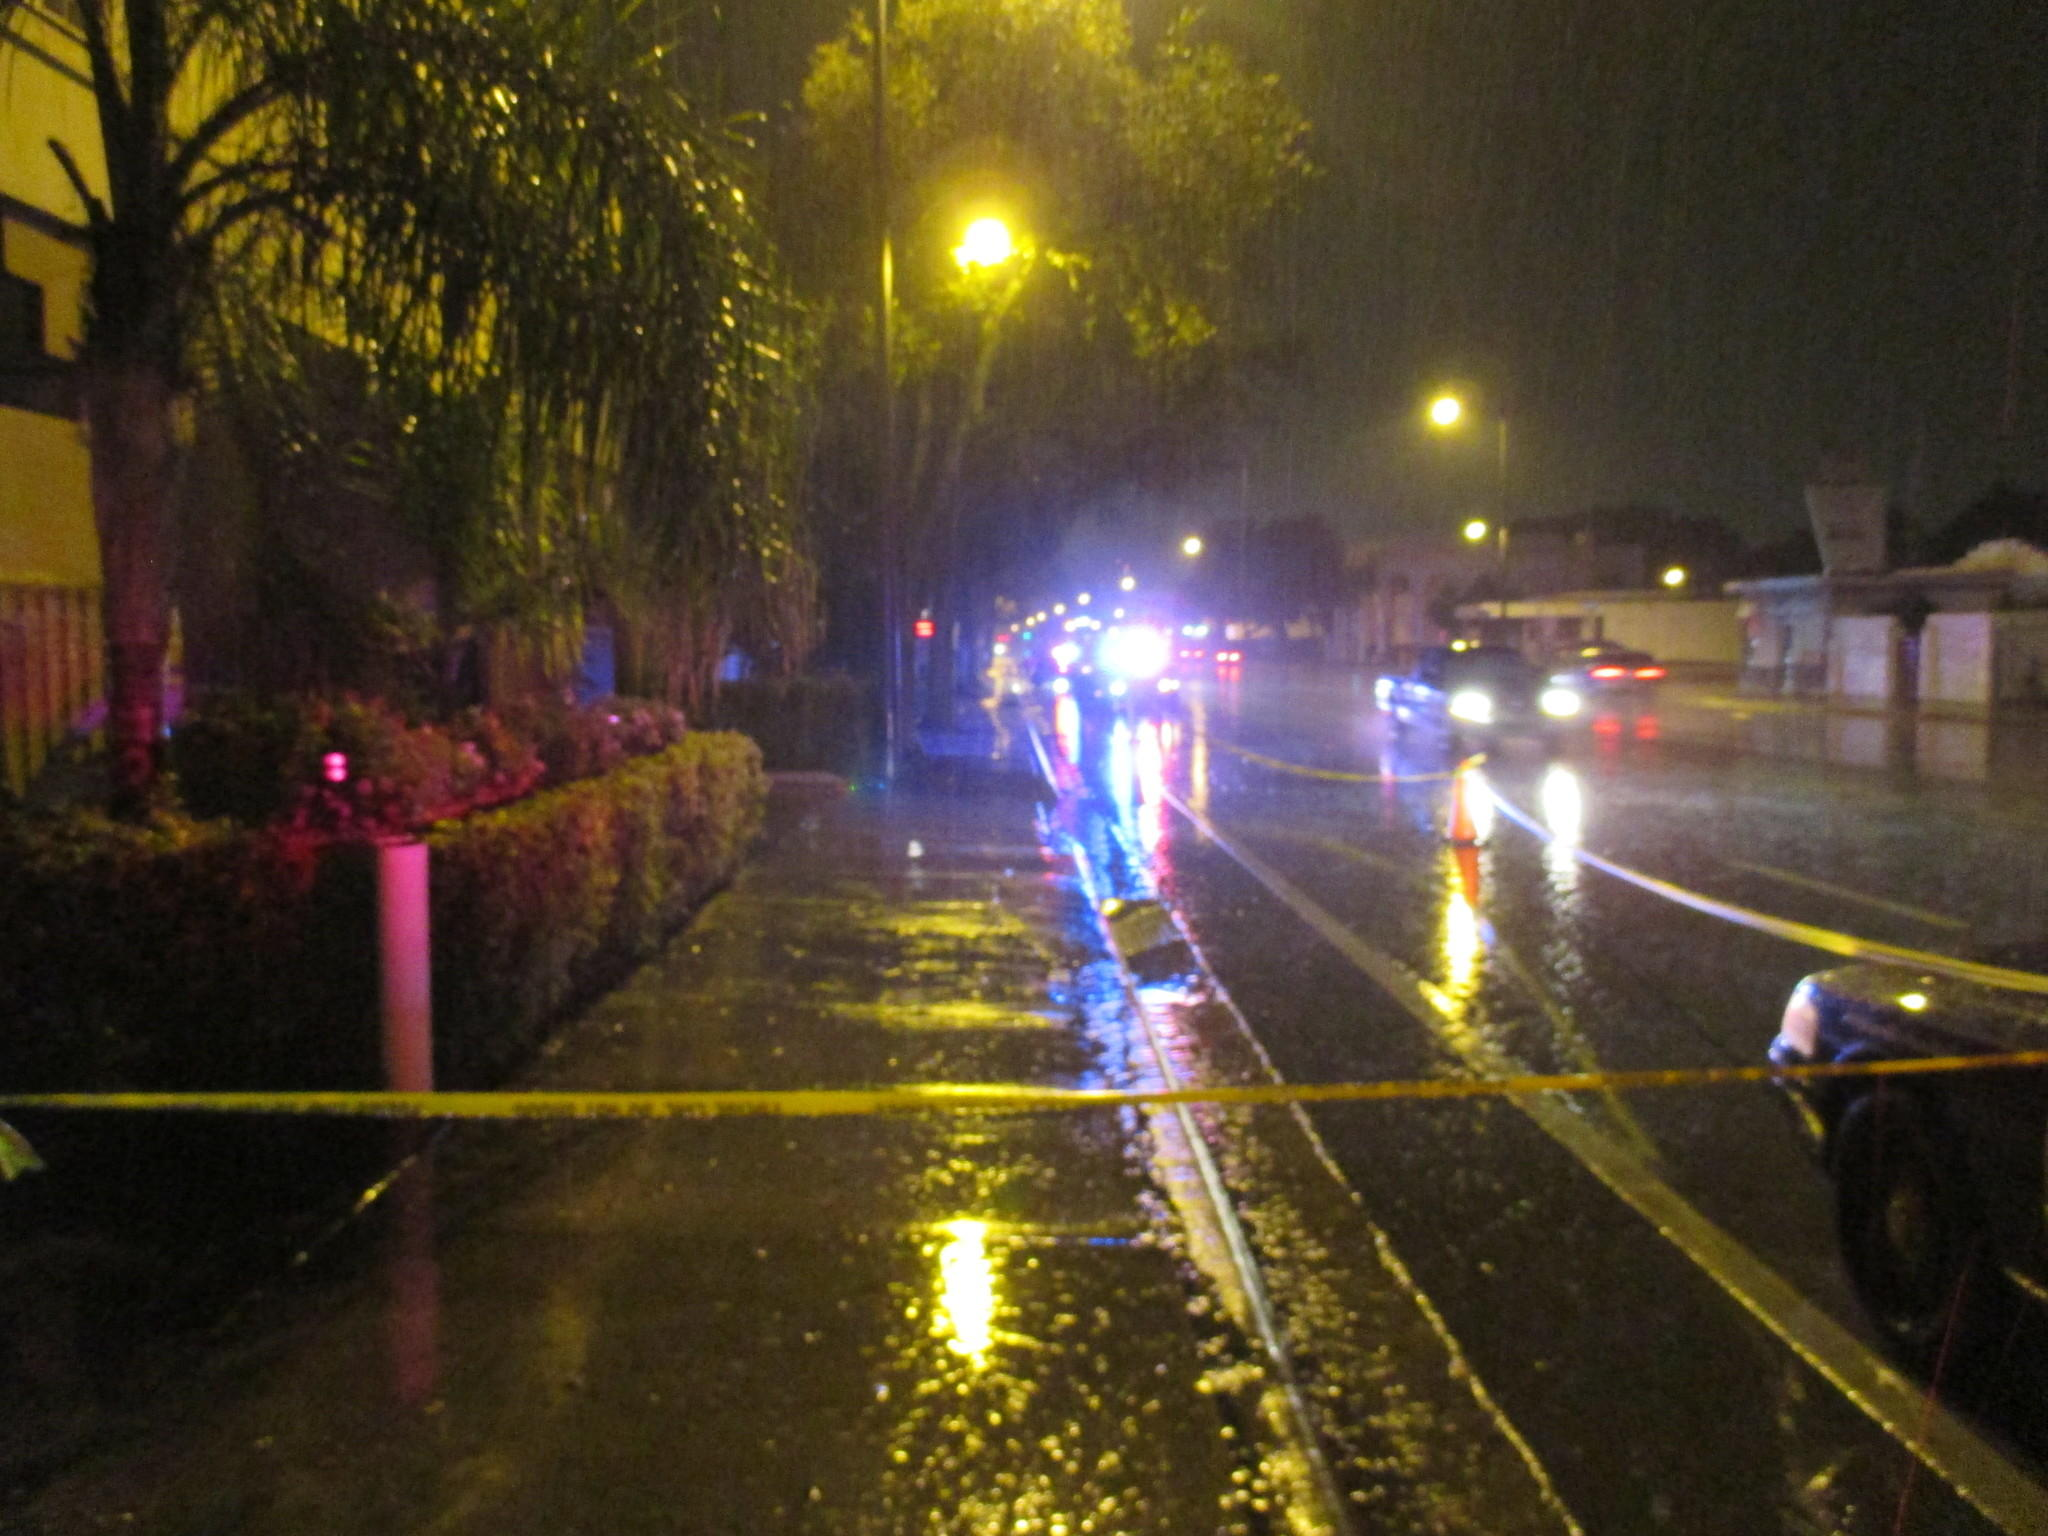 Police cordoned off the crime scene Friday following the fatal stabbing of a homeless man in Hollywood.